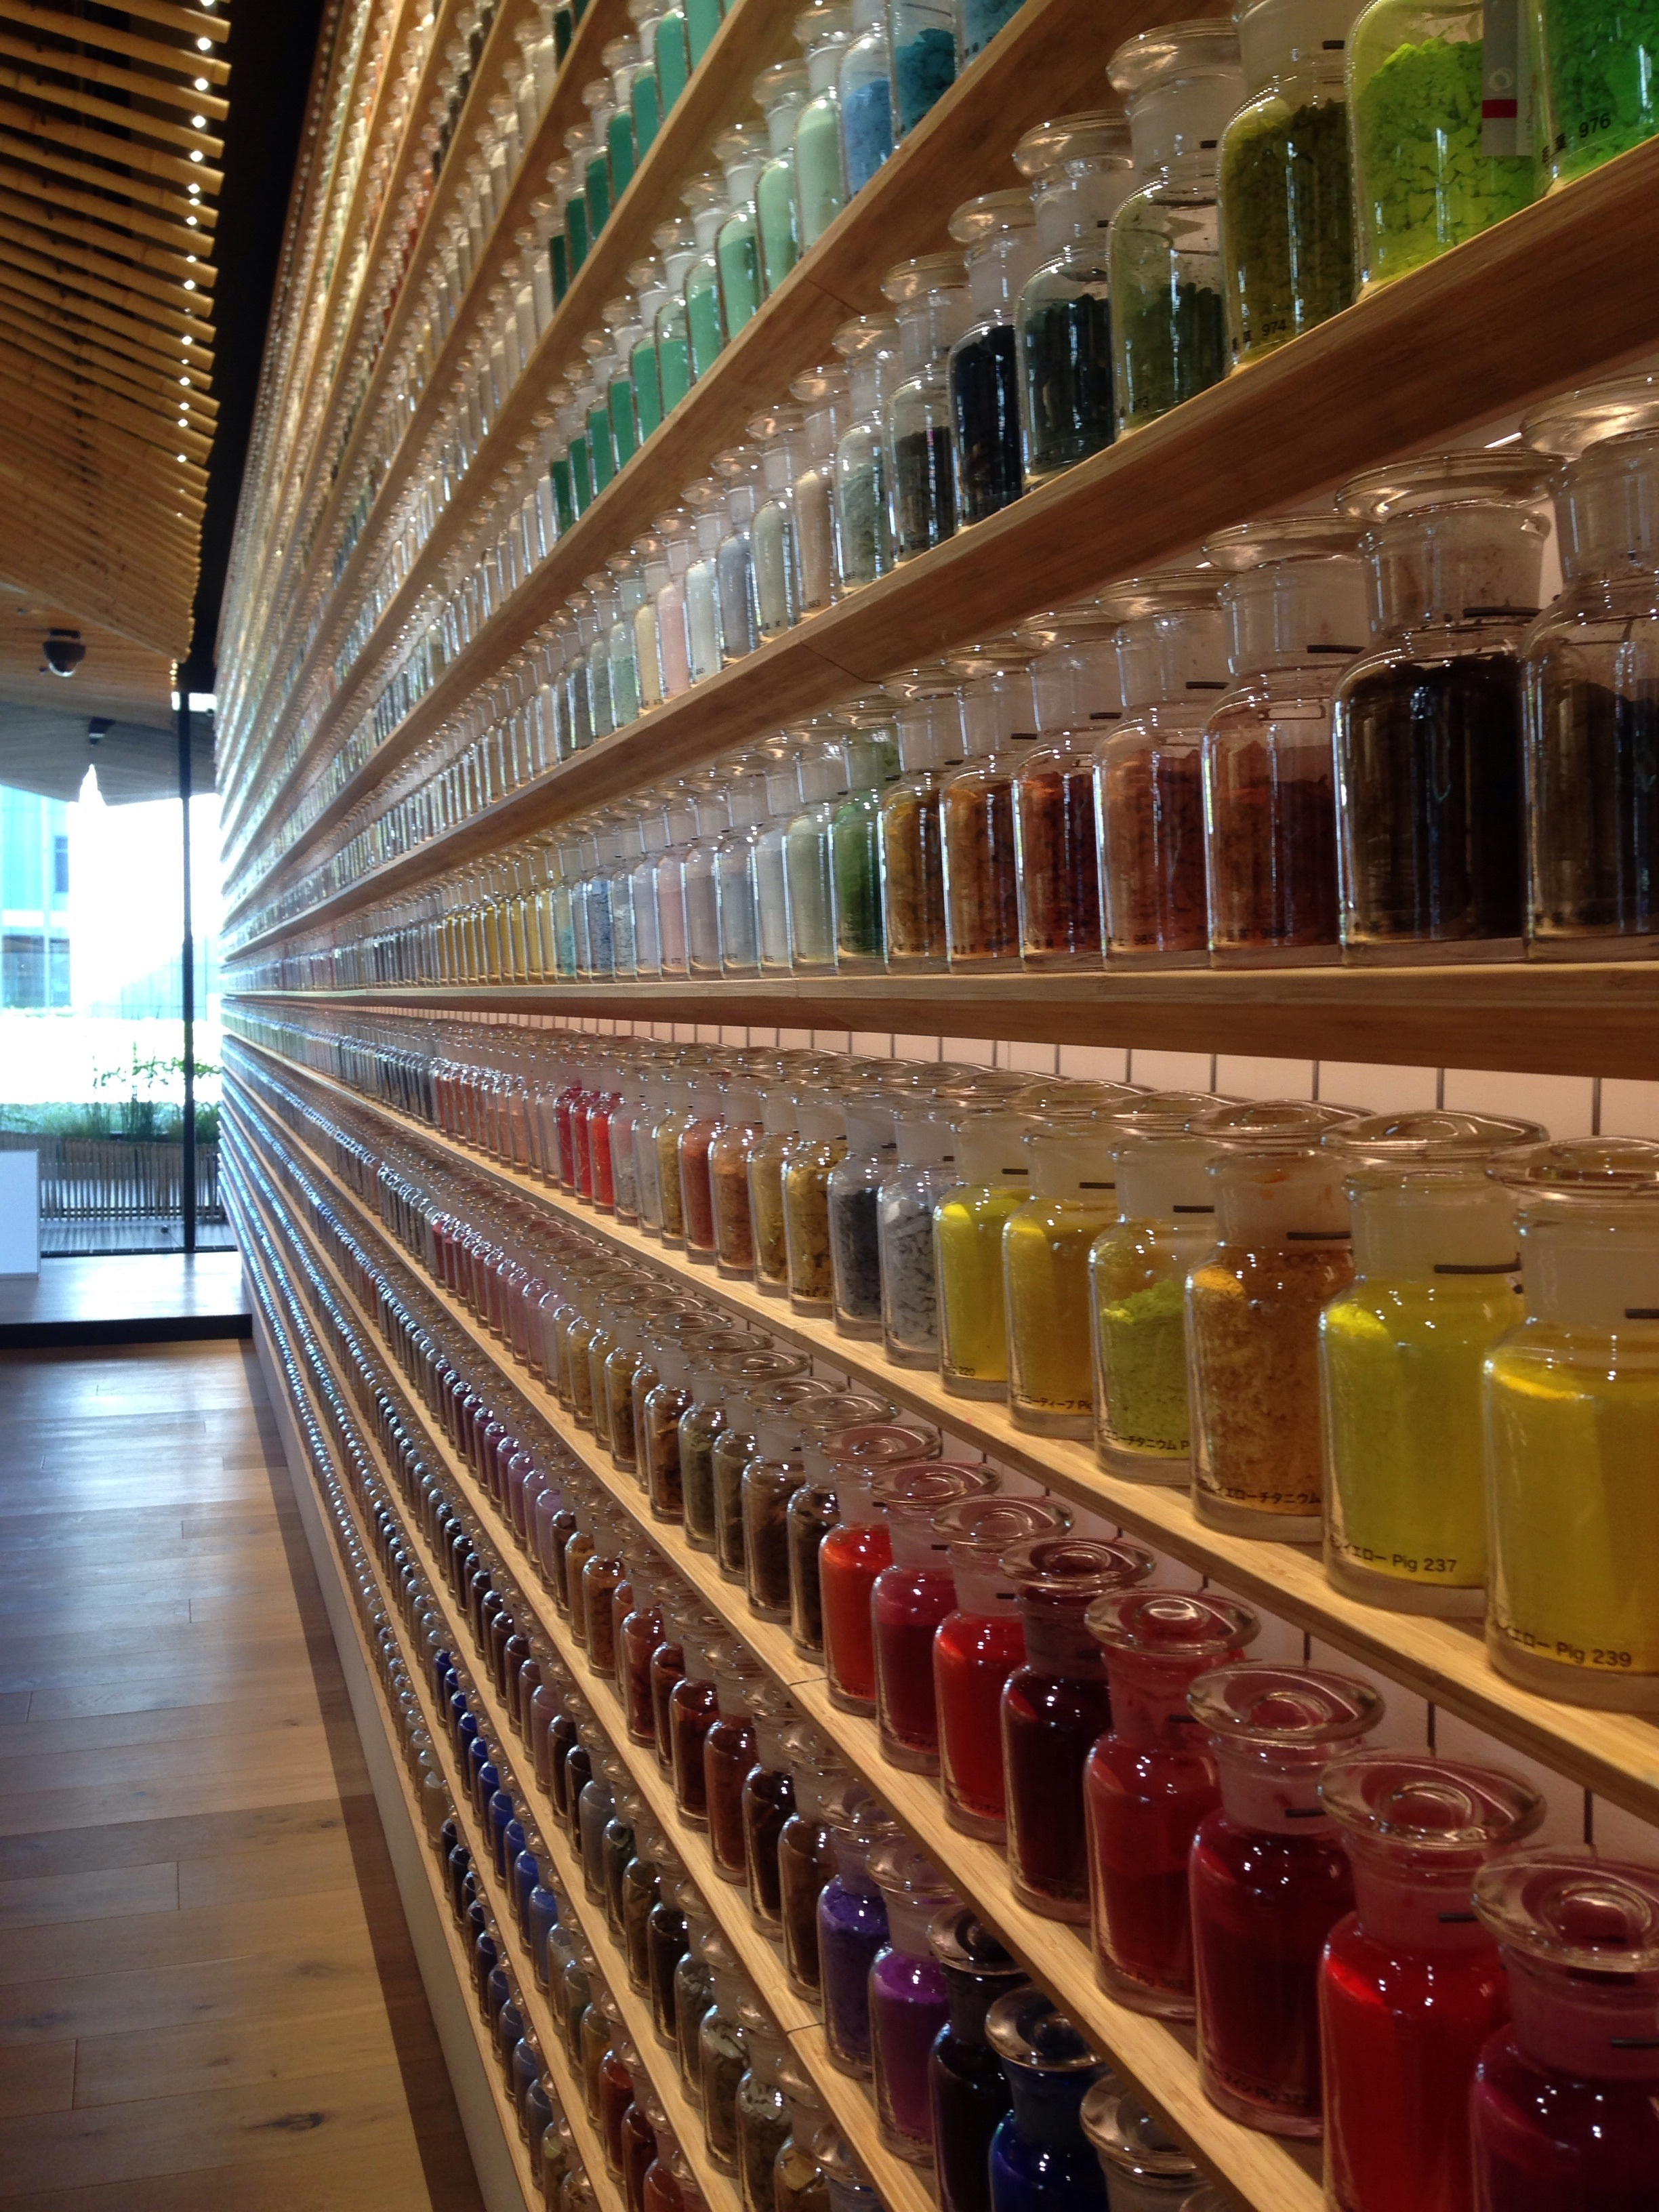 Walls of jars of pigments!